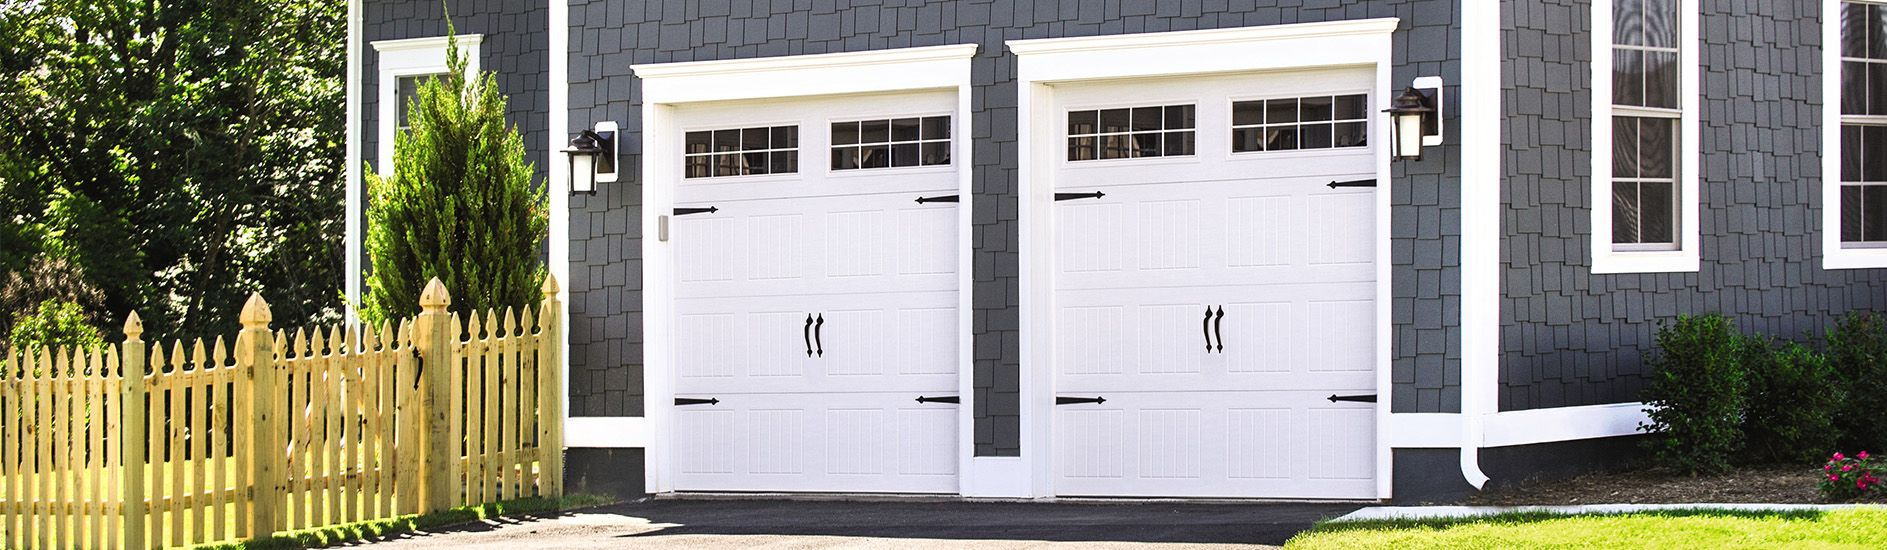 9100 Steel Garage Door Sonoma White Stocktoniii Wayne Dalton Garage Doors Garage Doors Garage Door Decor